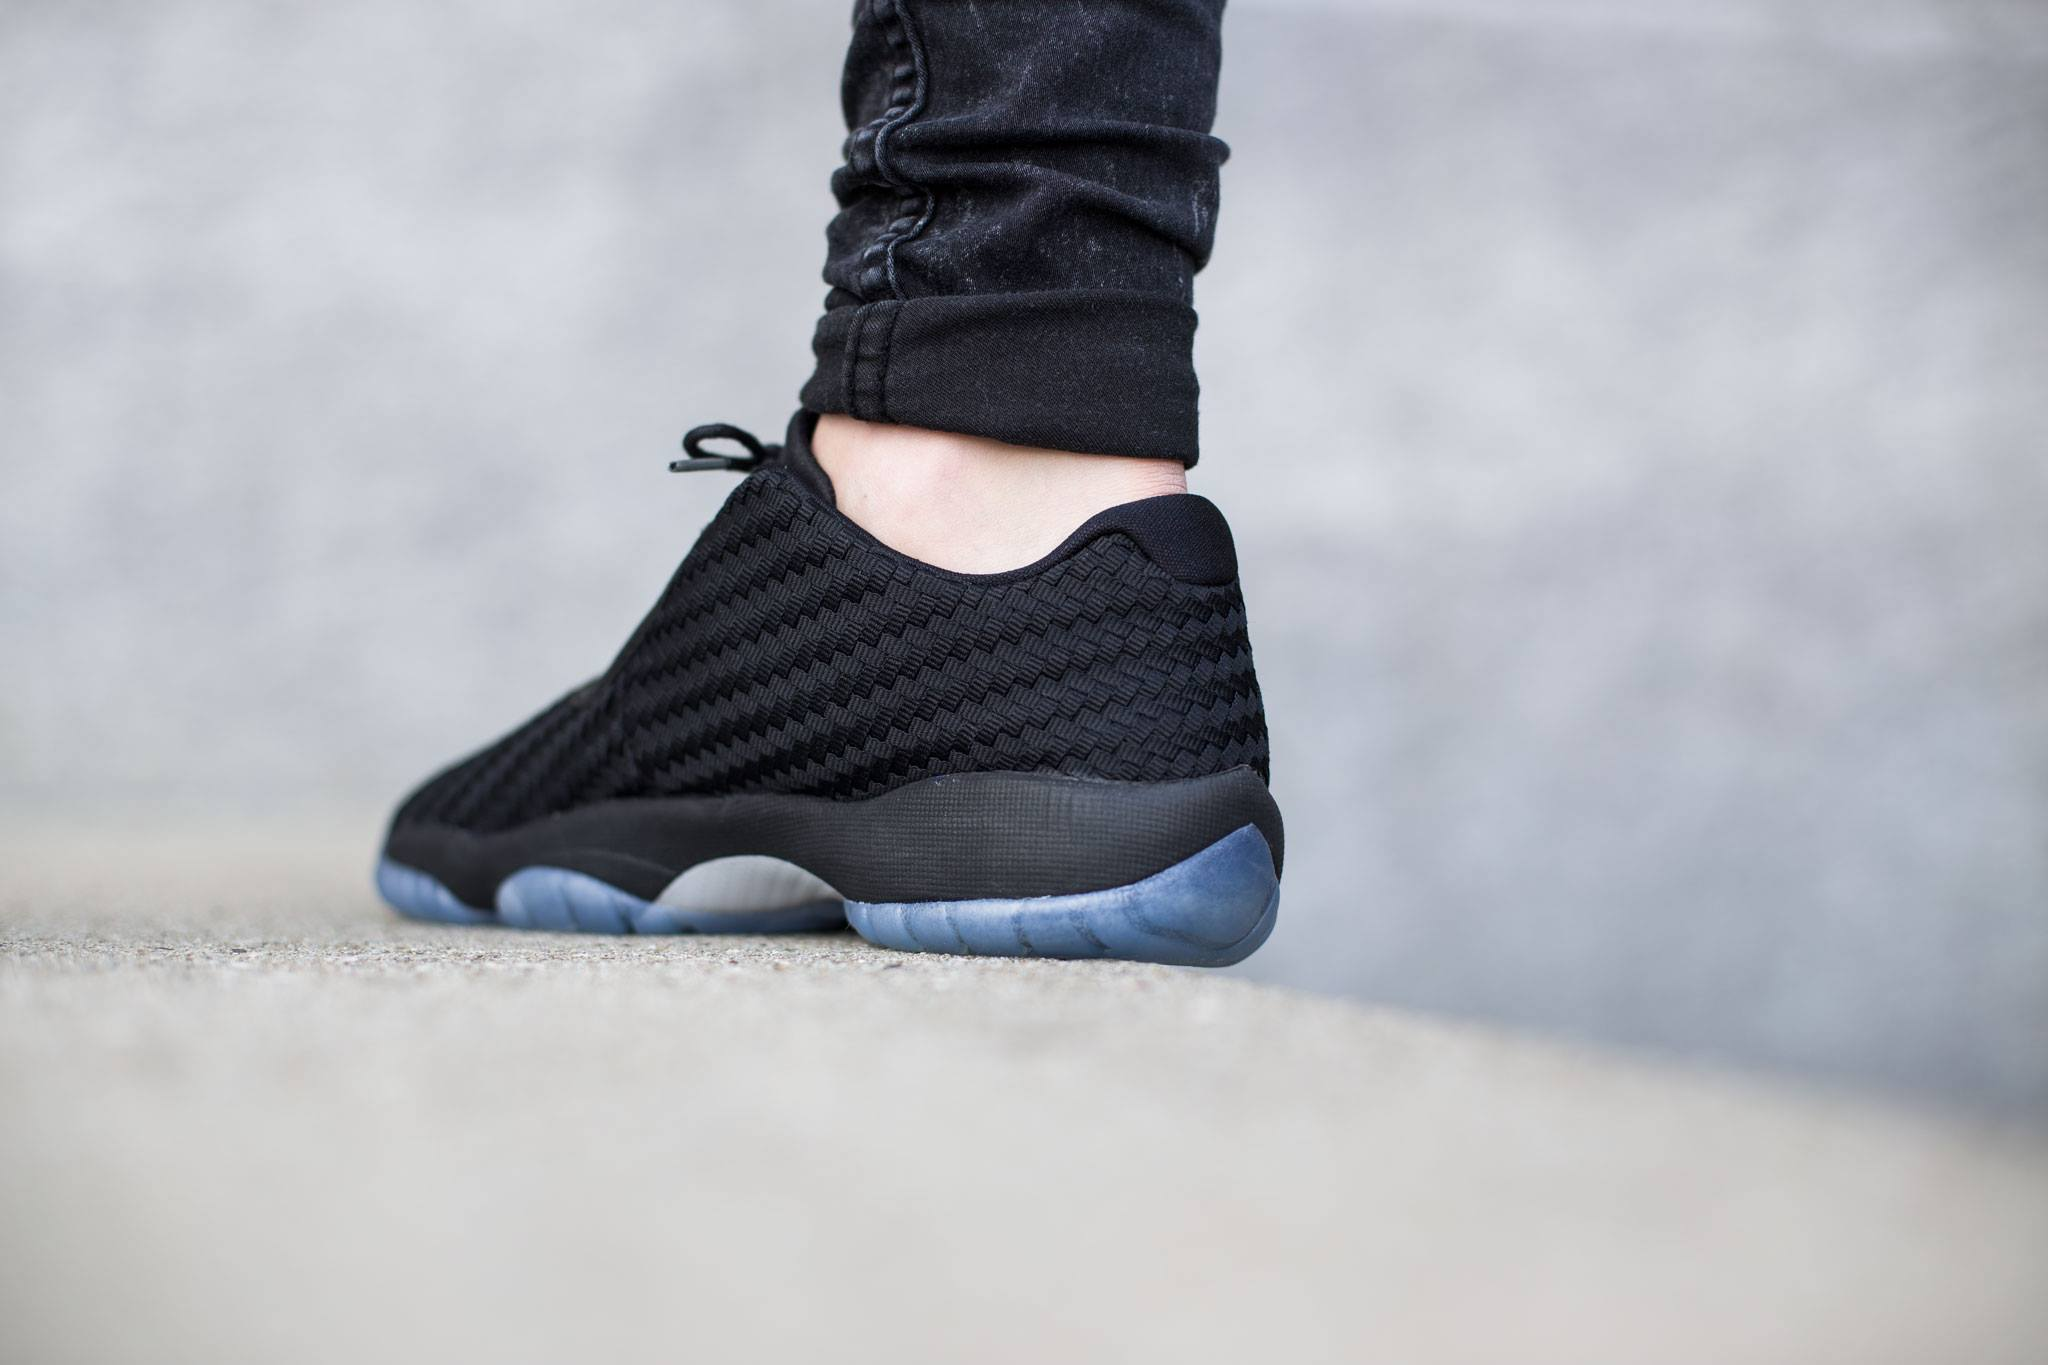 3bd5314e1b358a ... low price air jordan future low gamma blue air 23 air jordan release  dates foamposite air